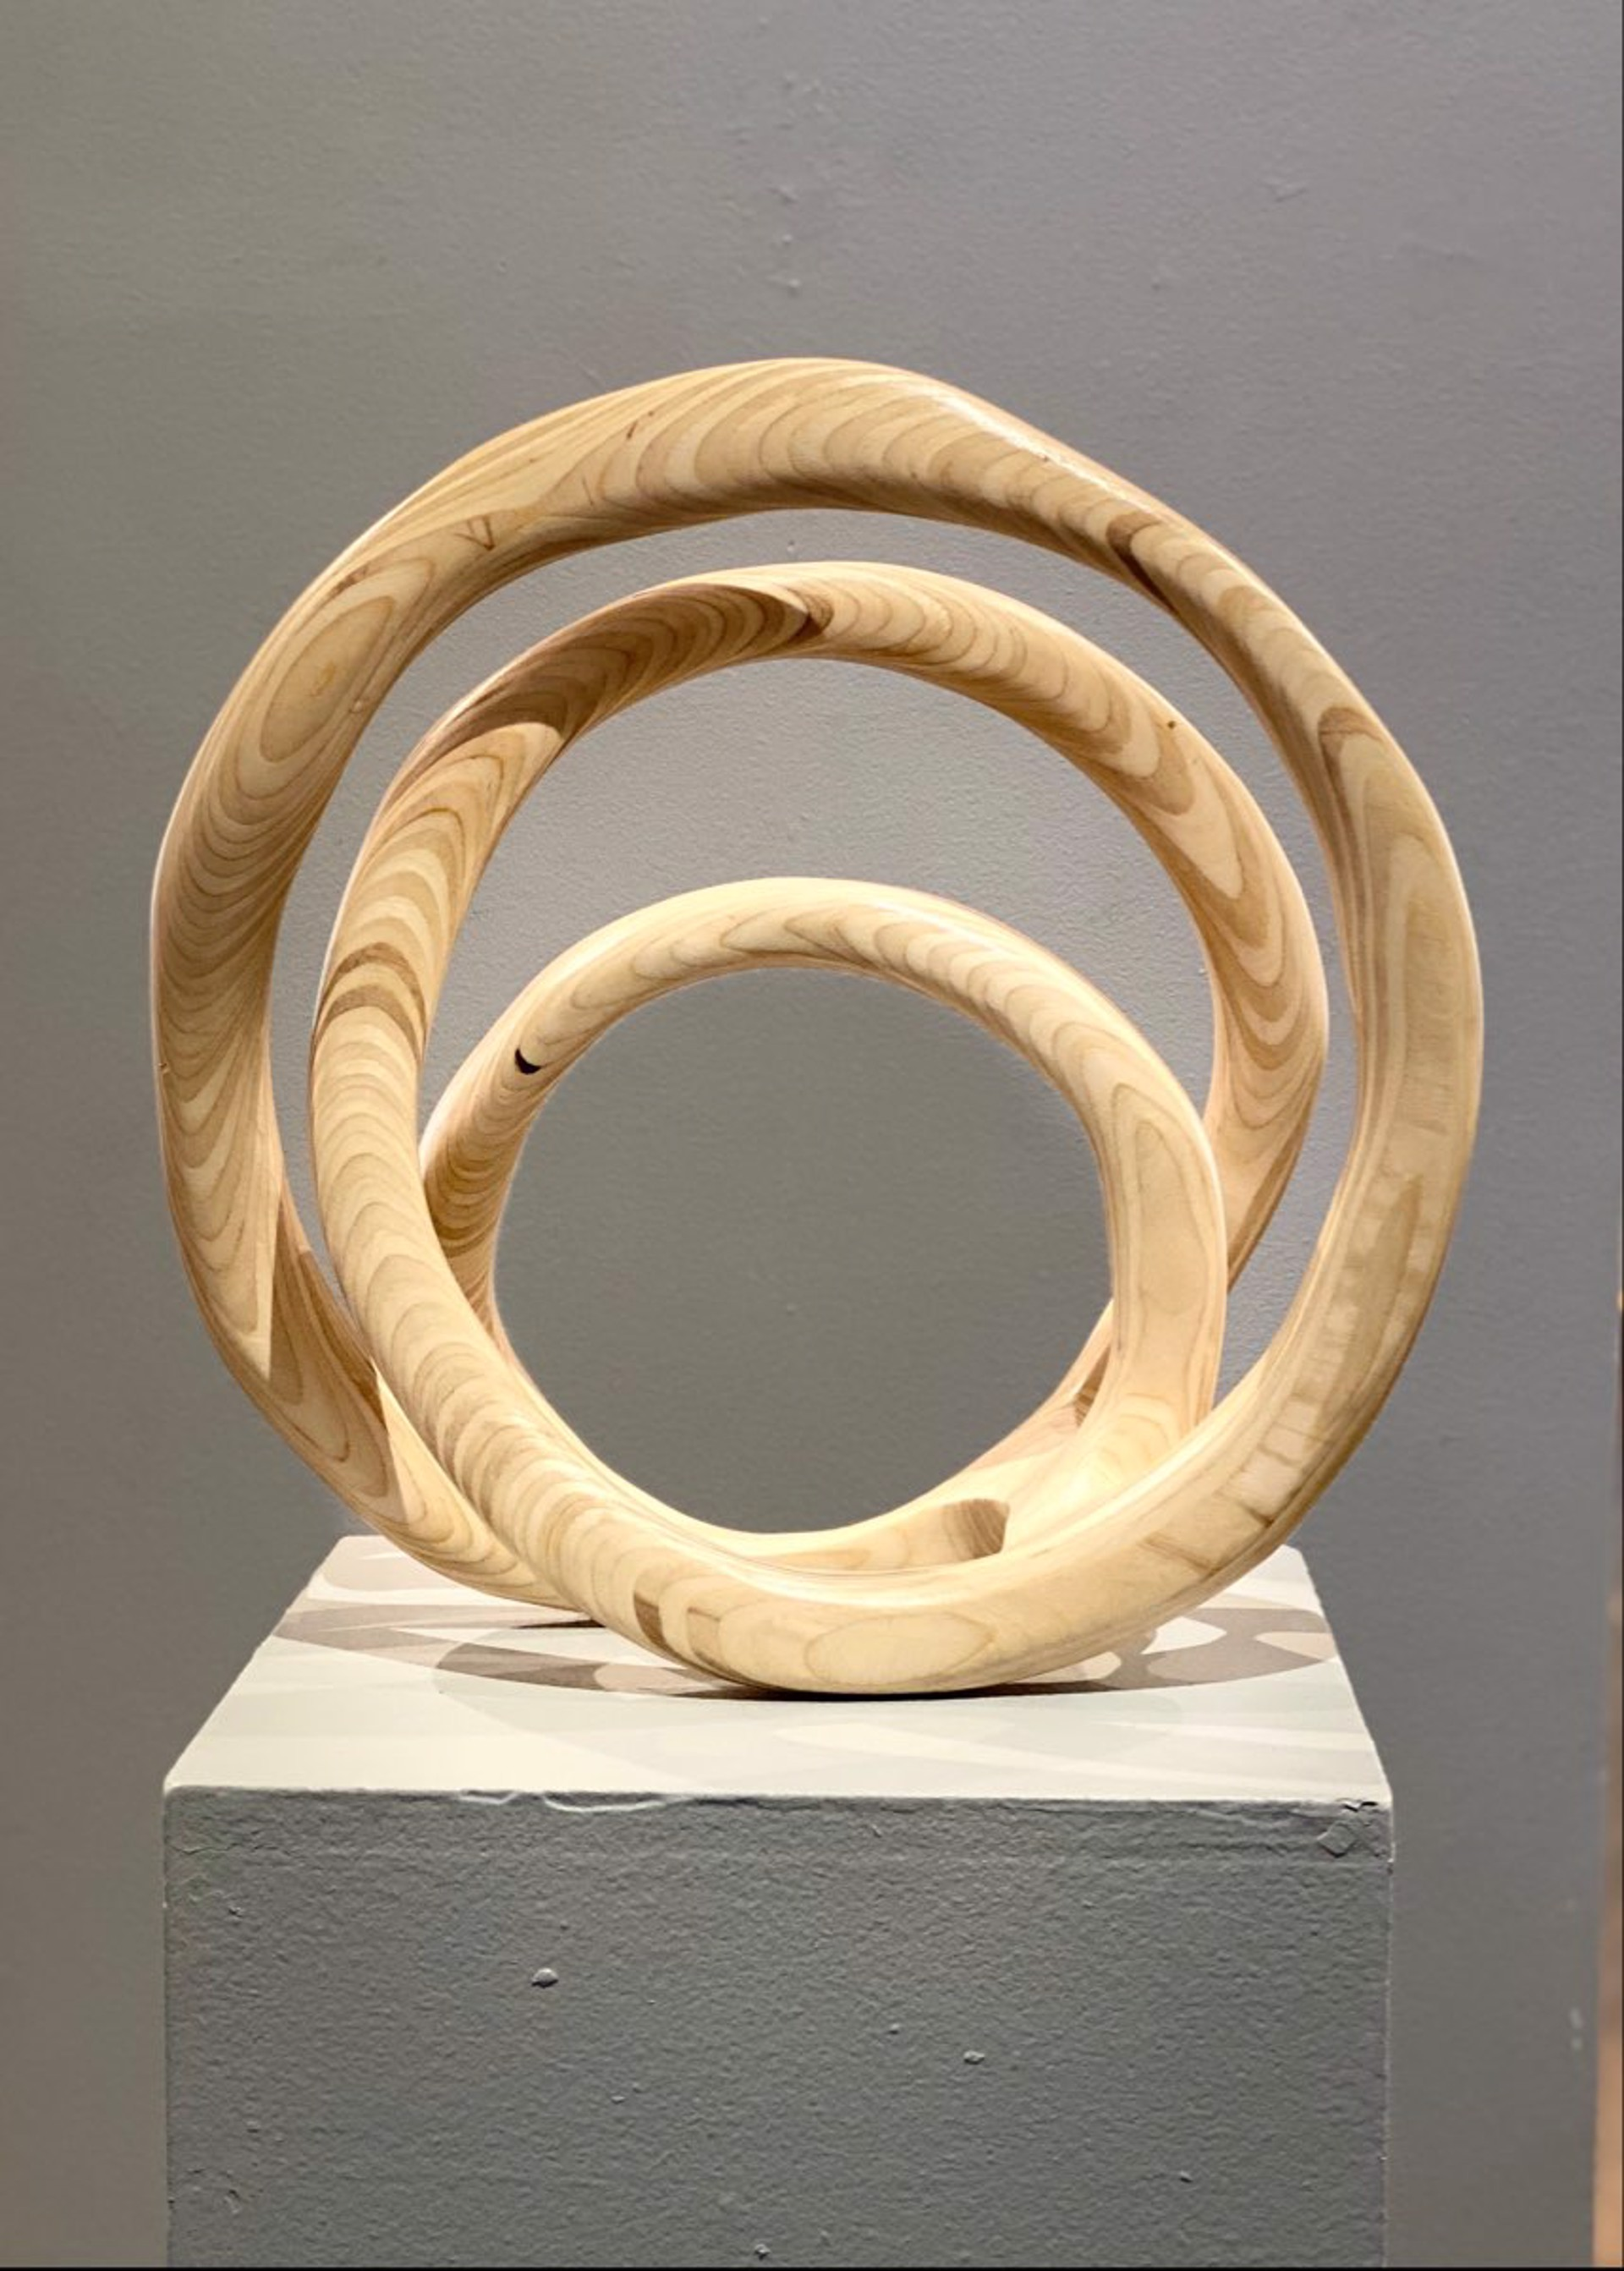 Baltic Birch Plywood Cycle by Caprice Pierucci